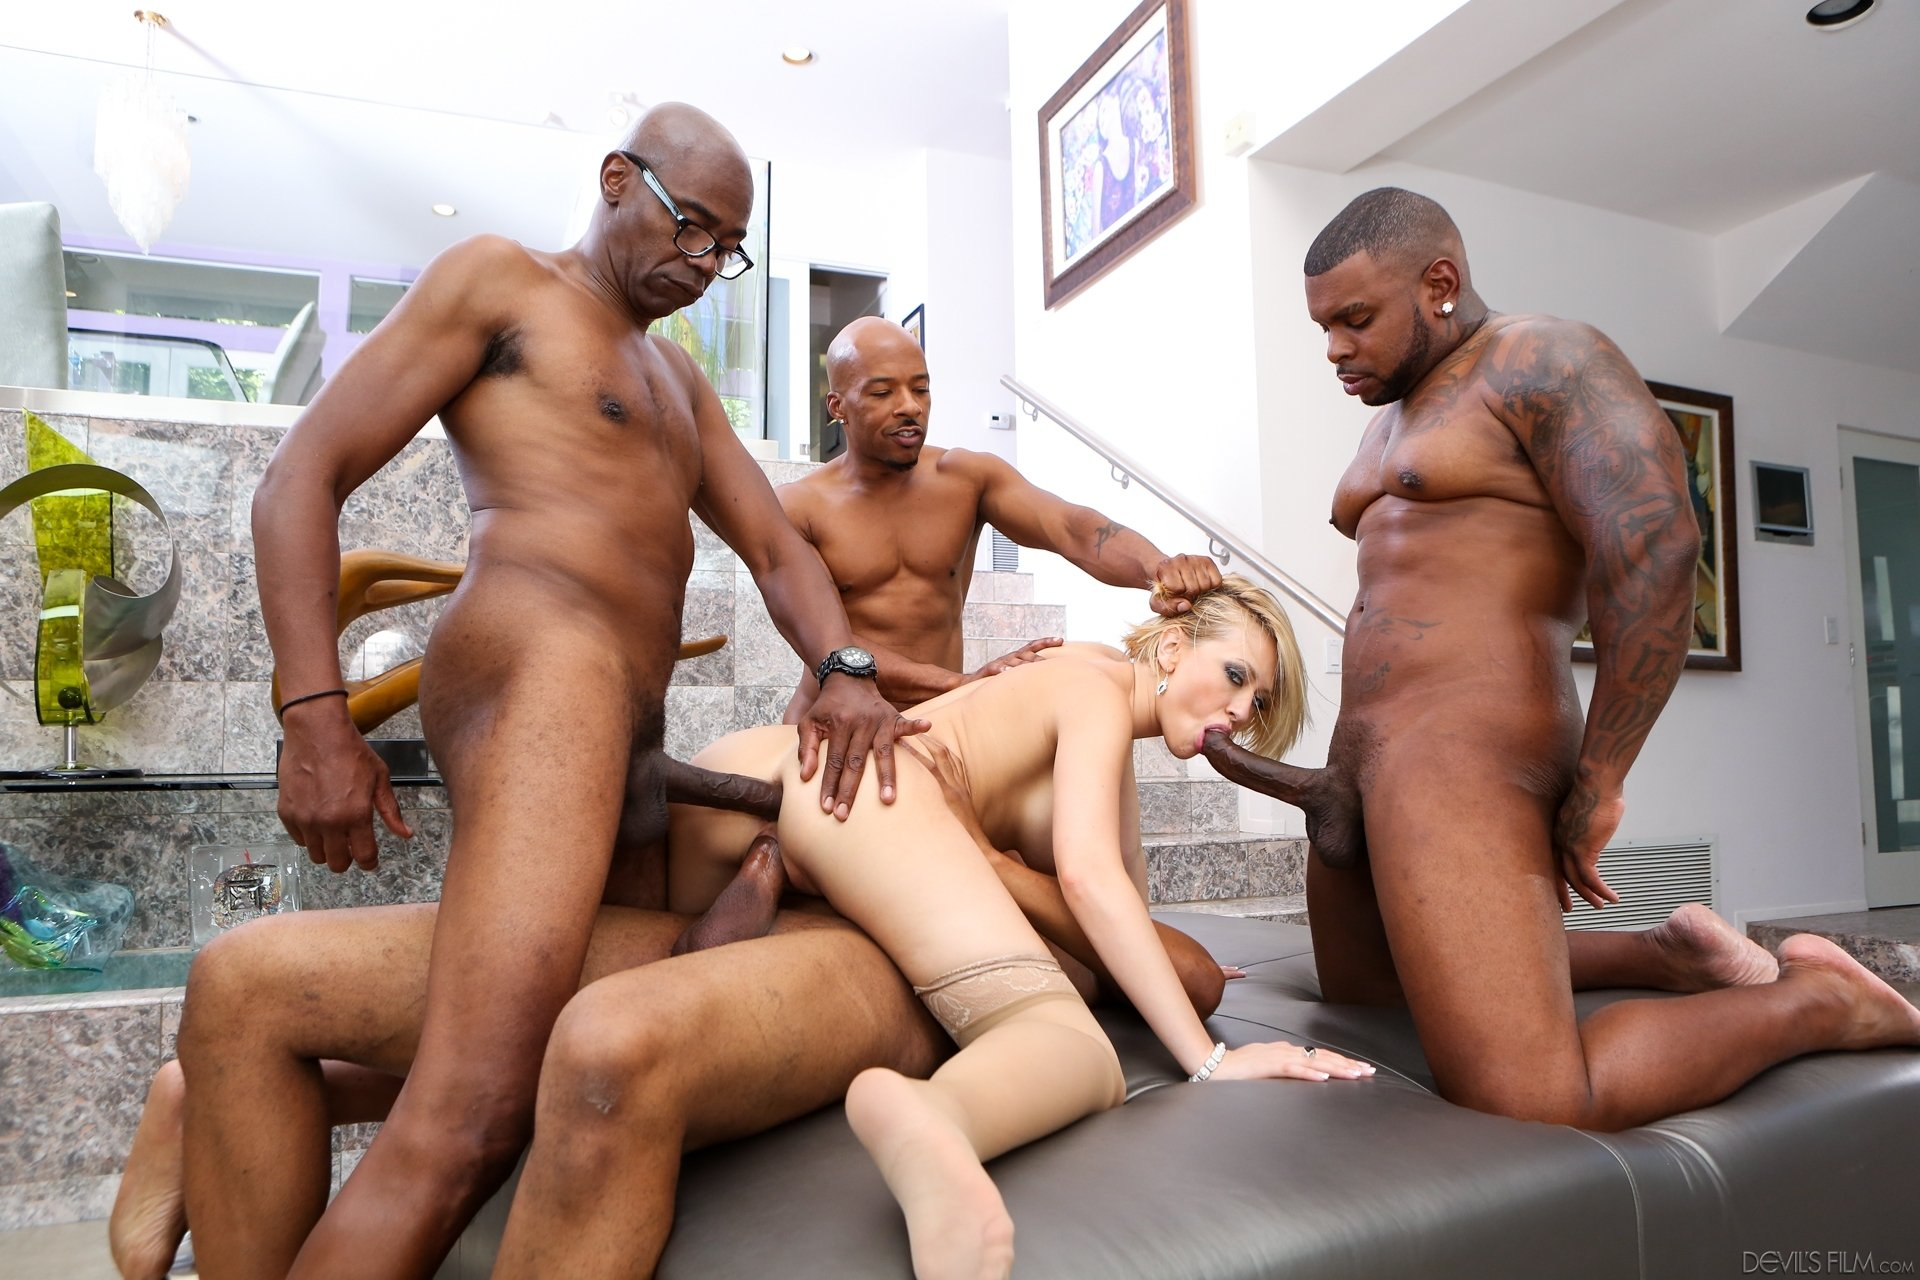 Berry recommend Gaysex pounded nude titjob